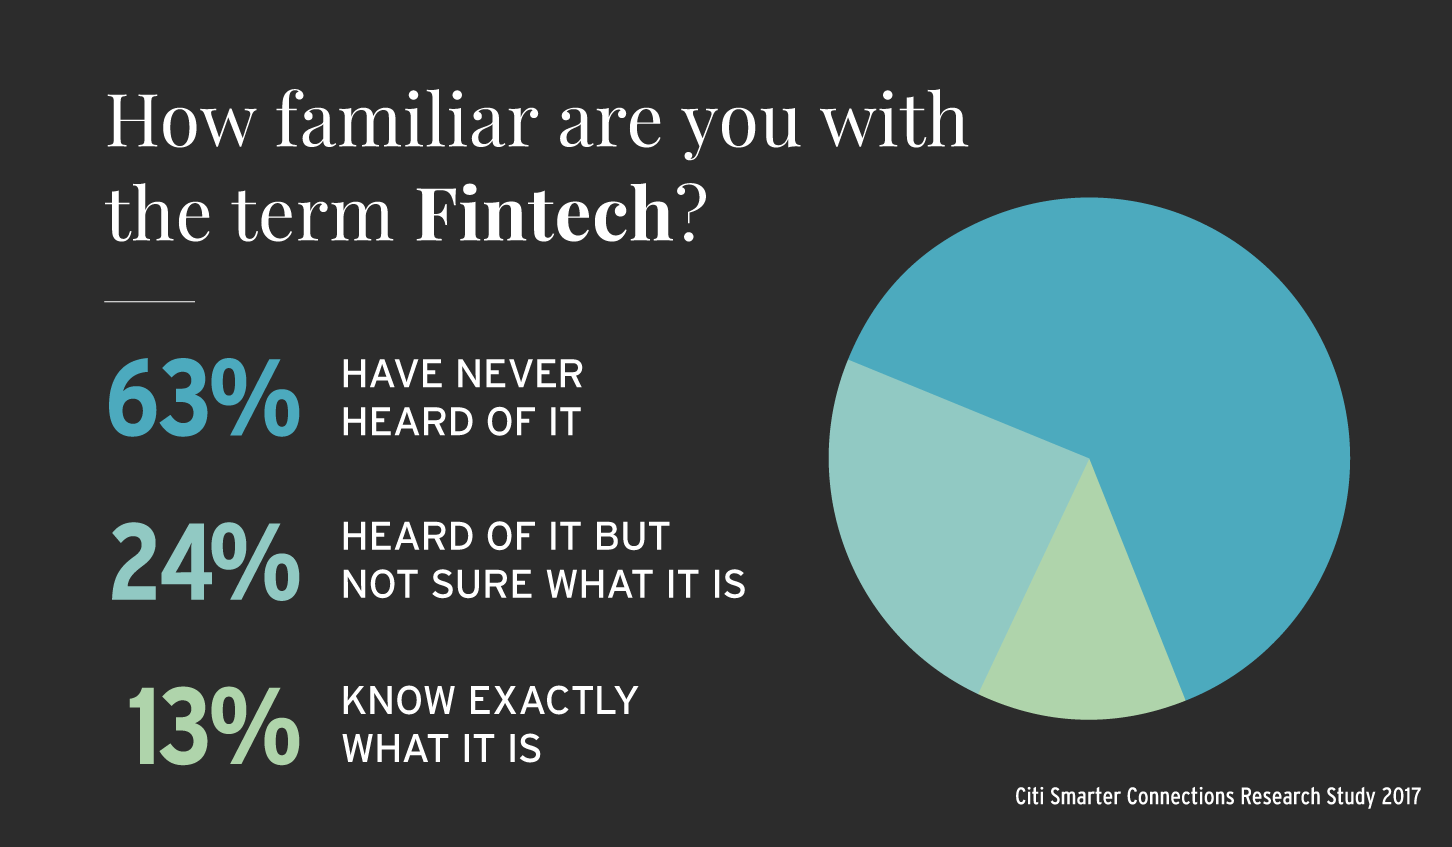 illustration showing that 63% of people have never heard of Financial technology, 24% have hear of it, but are not sure what it is; and 13% know exactly what it is. Statistics provided by Citi Smarter Connections Research Study 2017